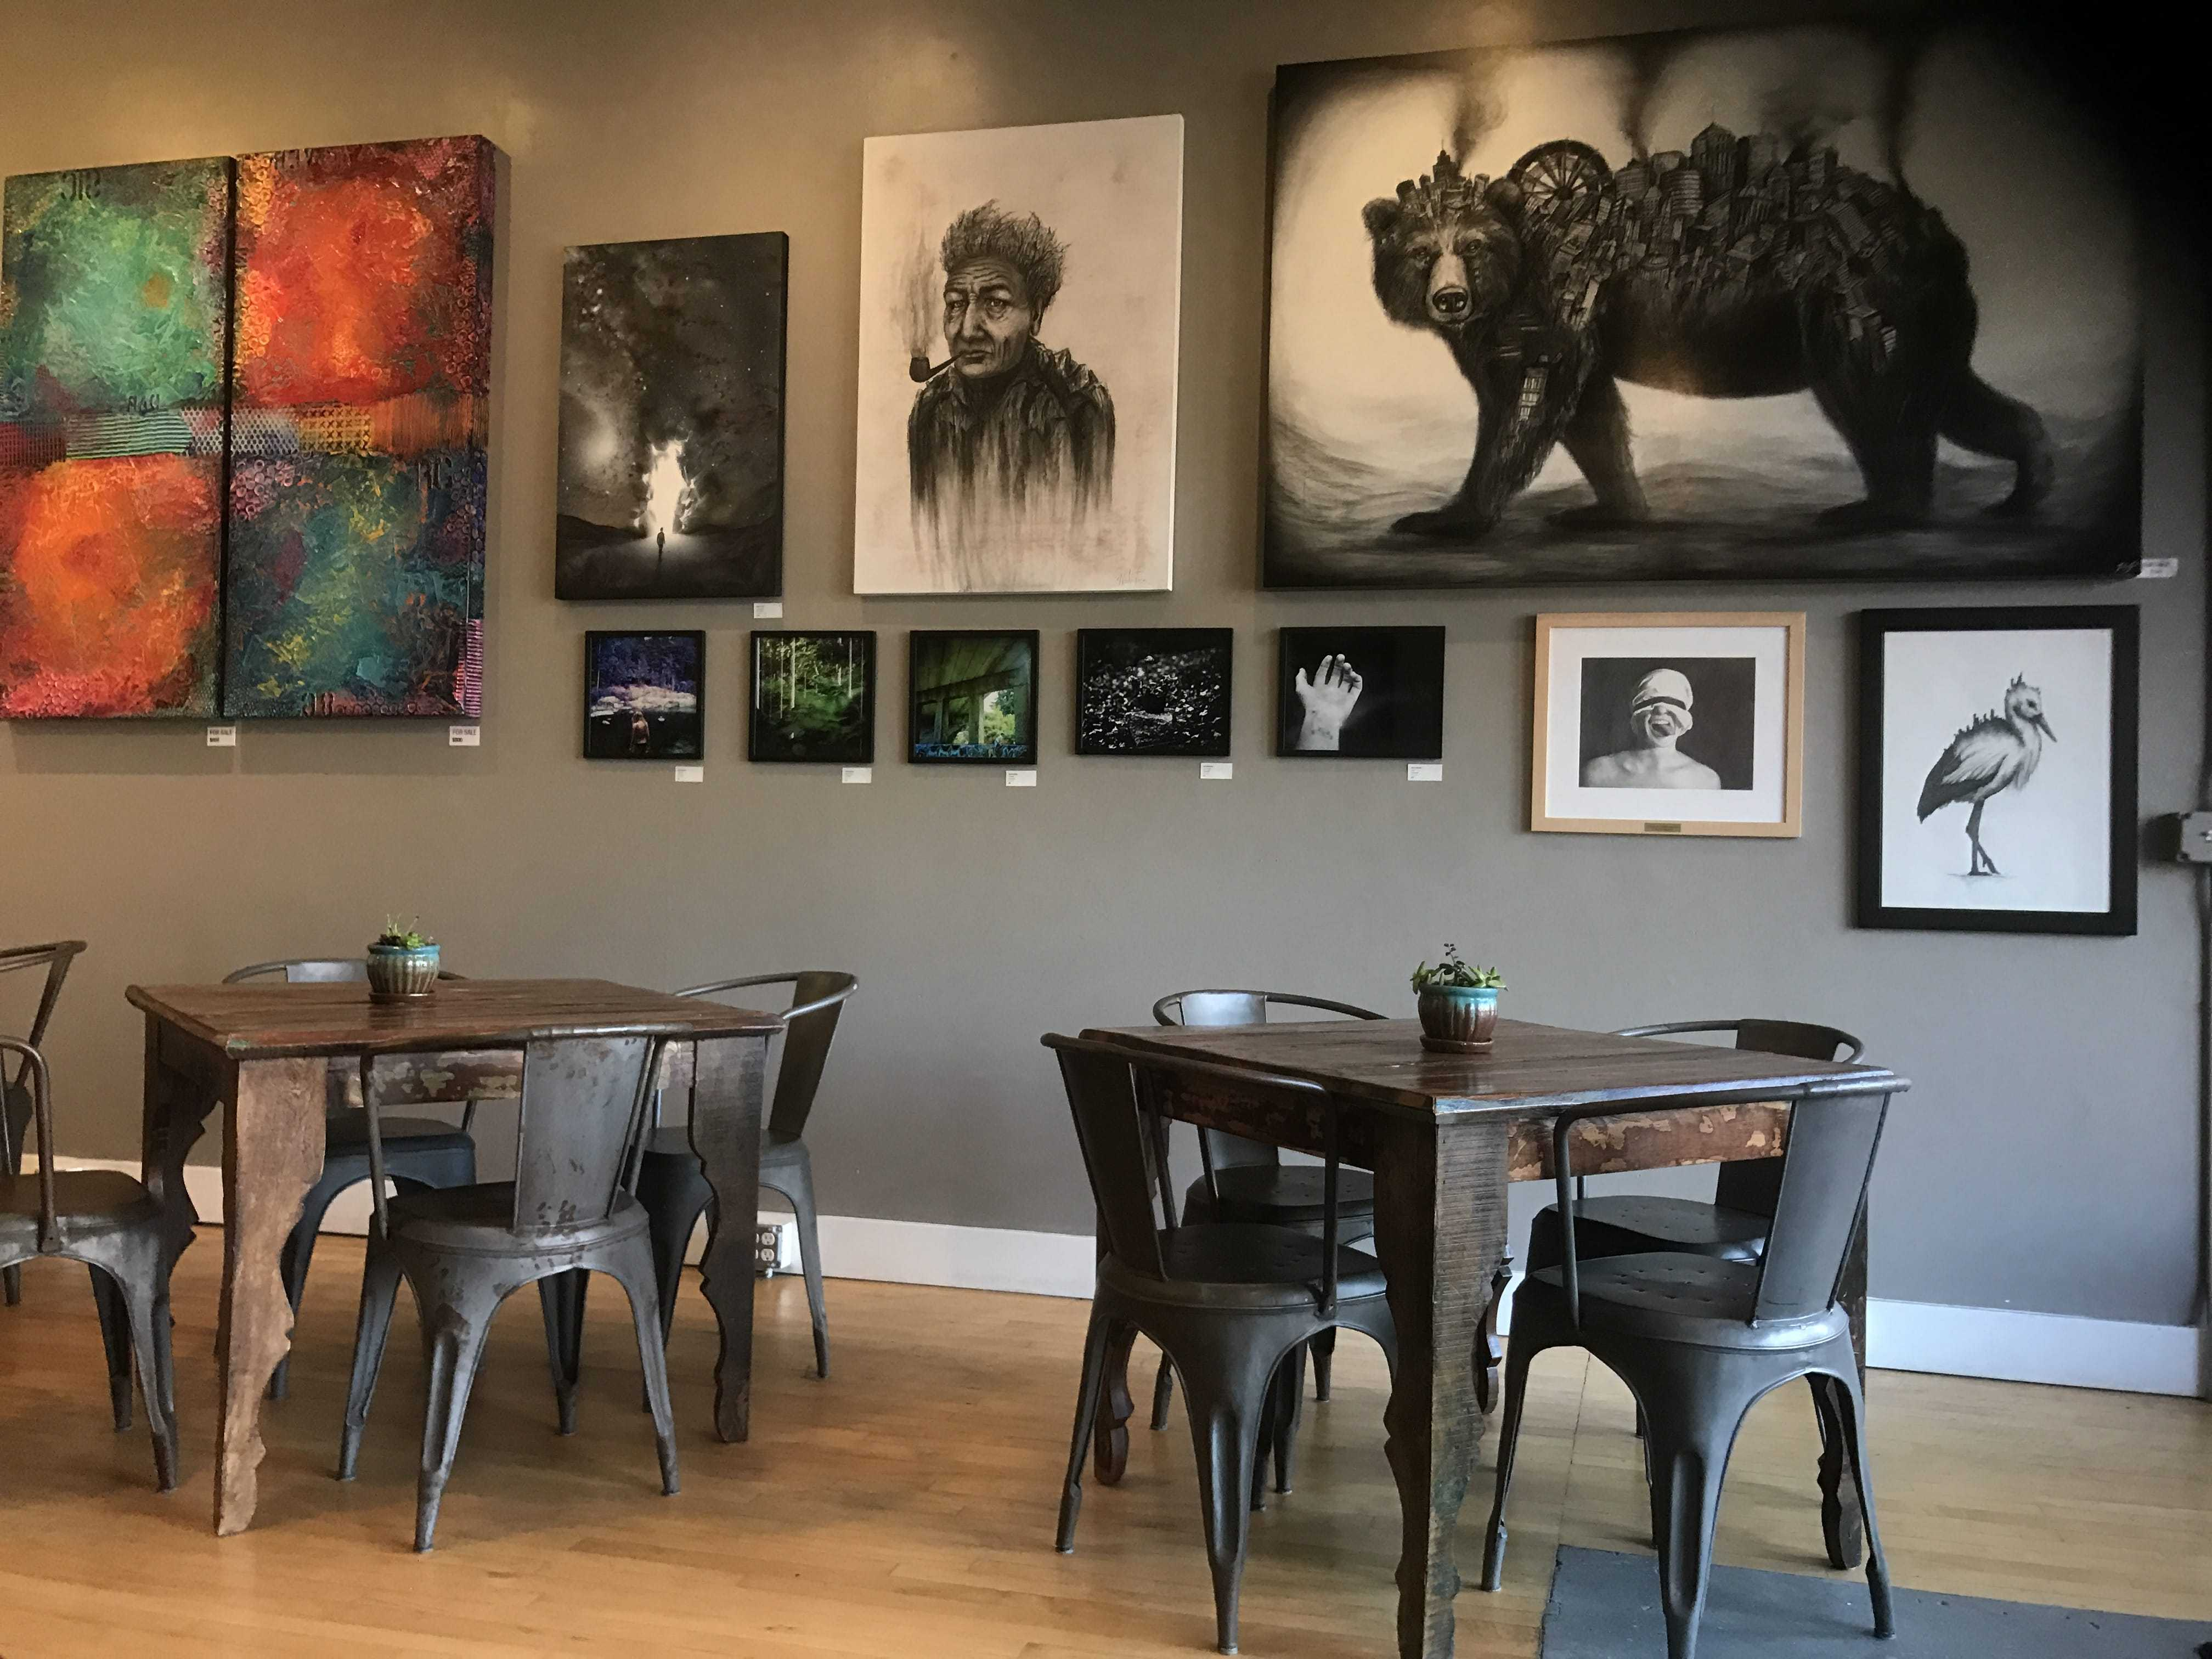 PaLatte Coffee and Art offers an eclectic blend of family-made artwork and tasty drinks